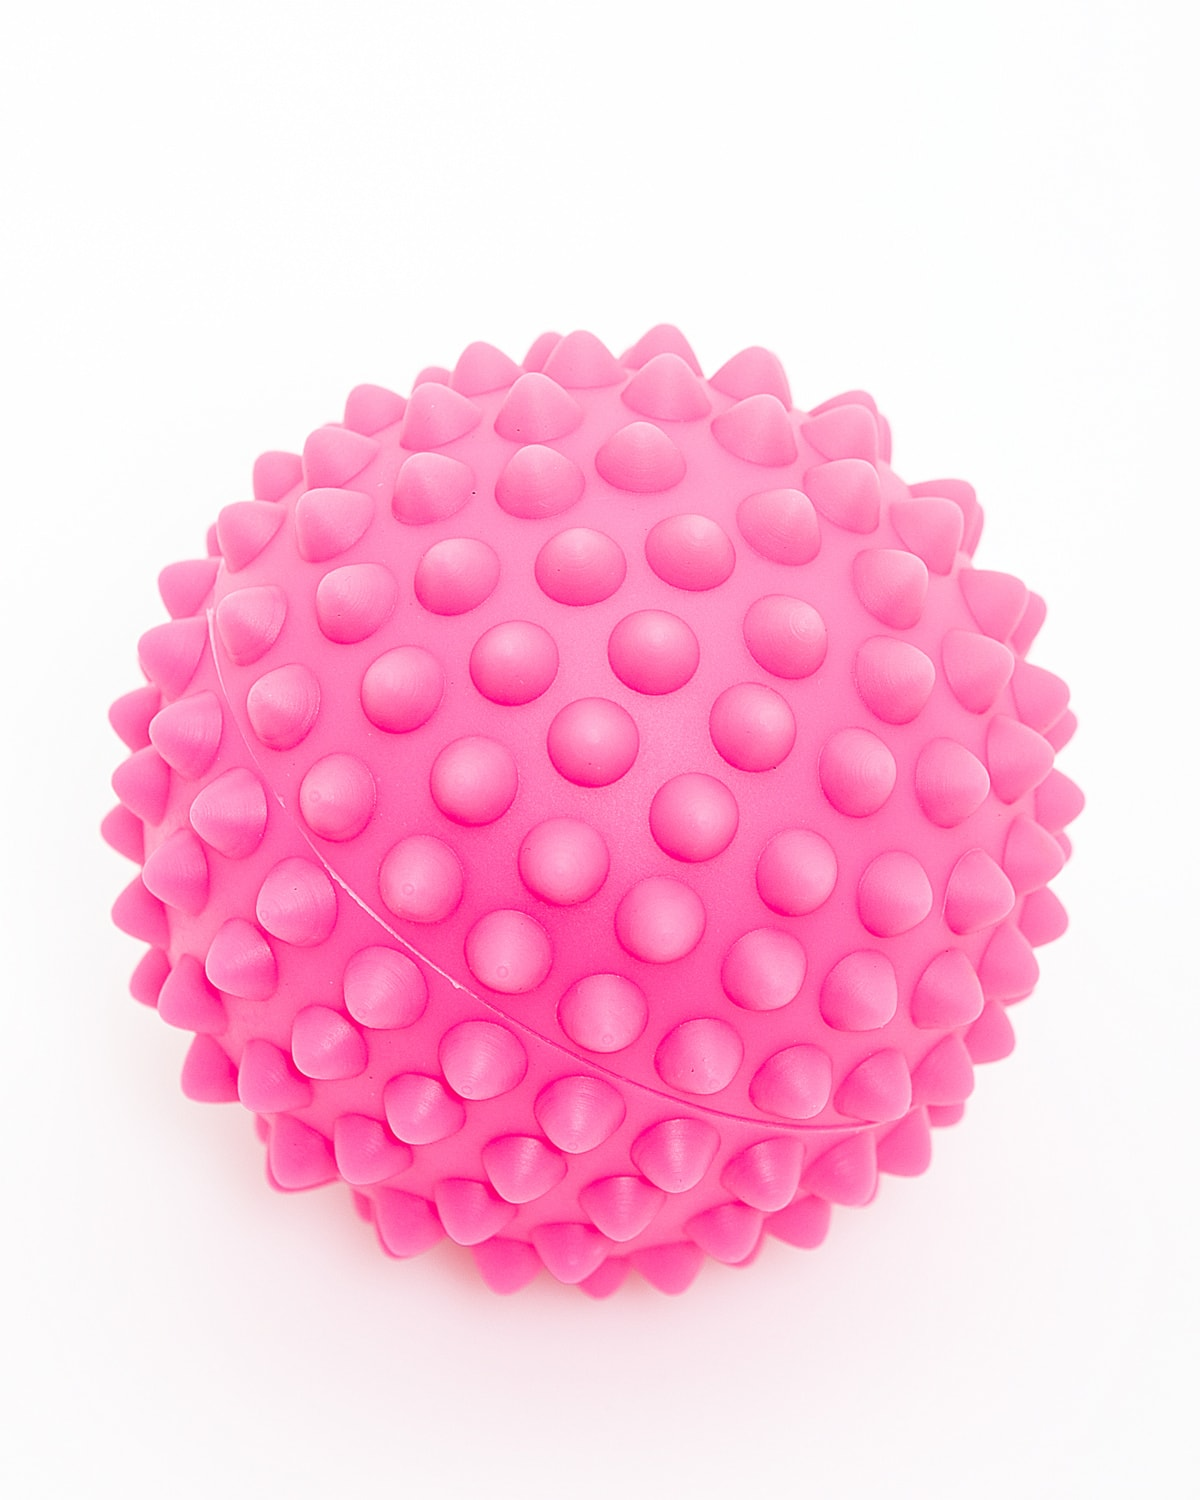 LEVITY Premium Fitness Spiky Trigger Ball 1